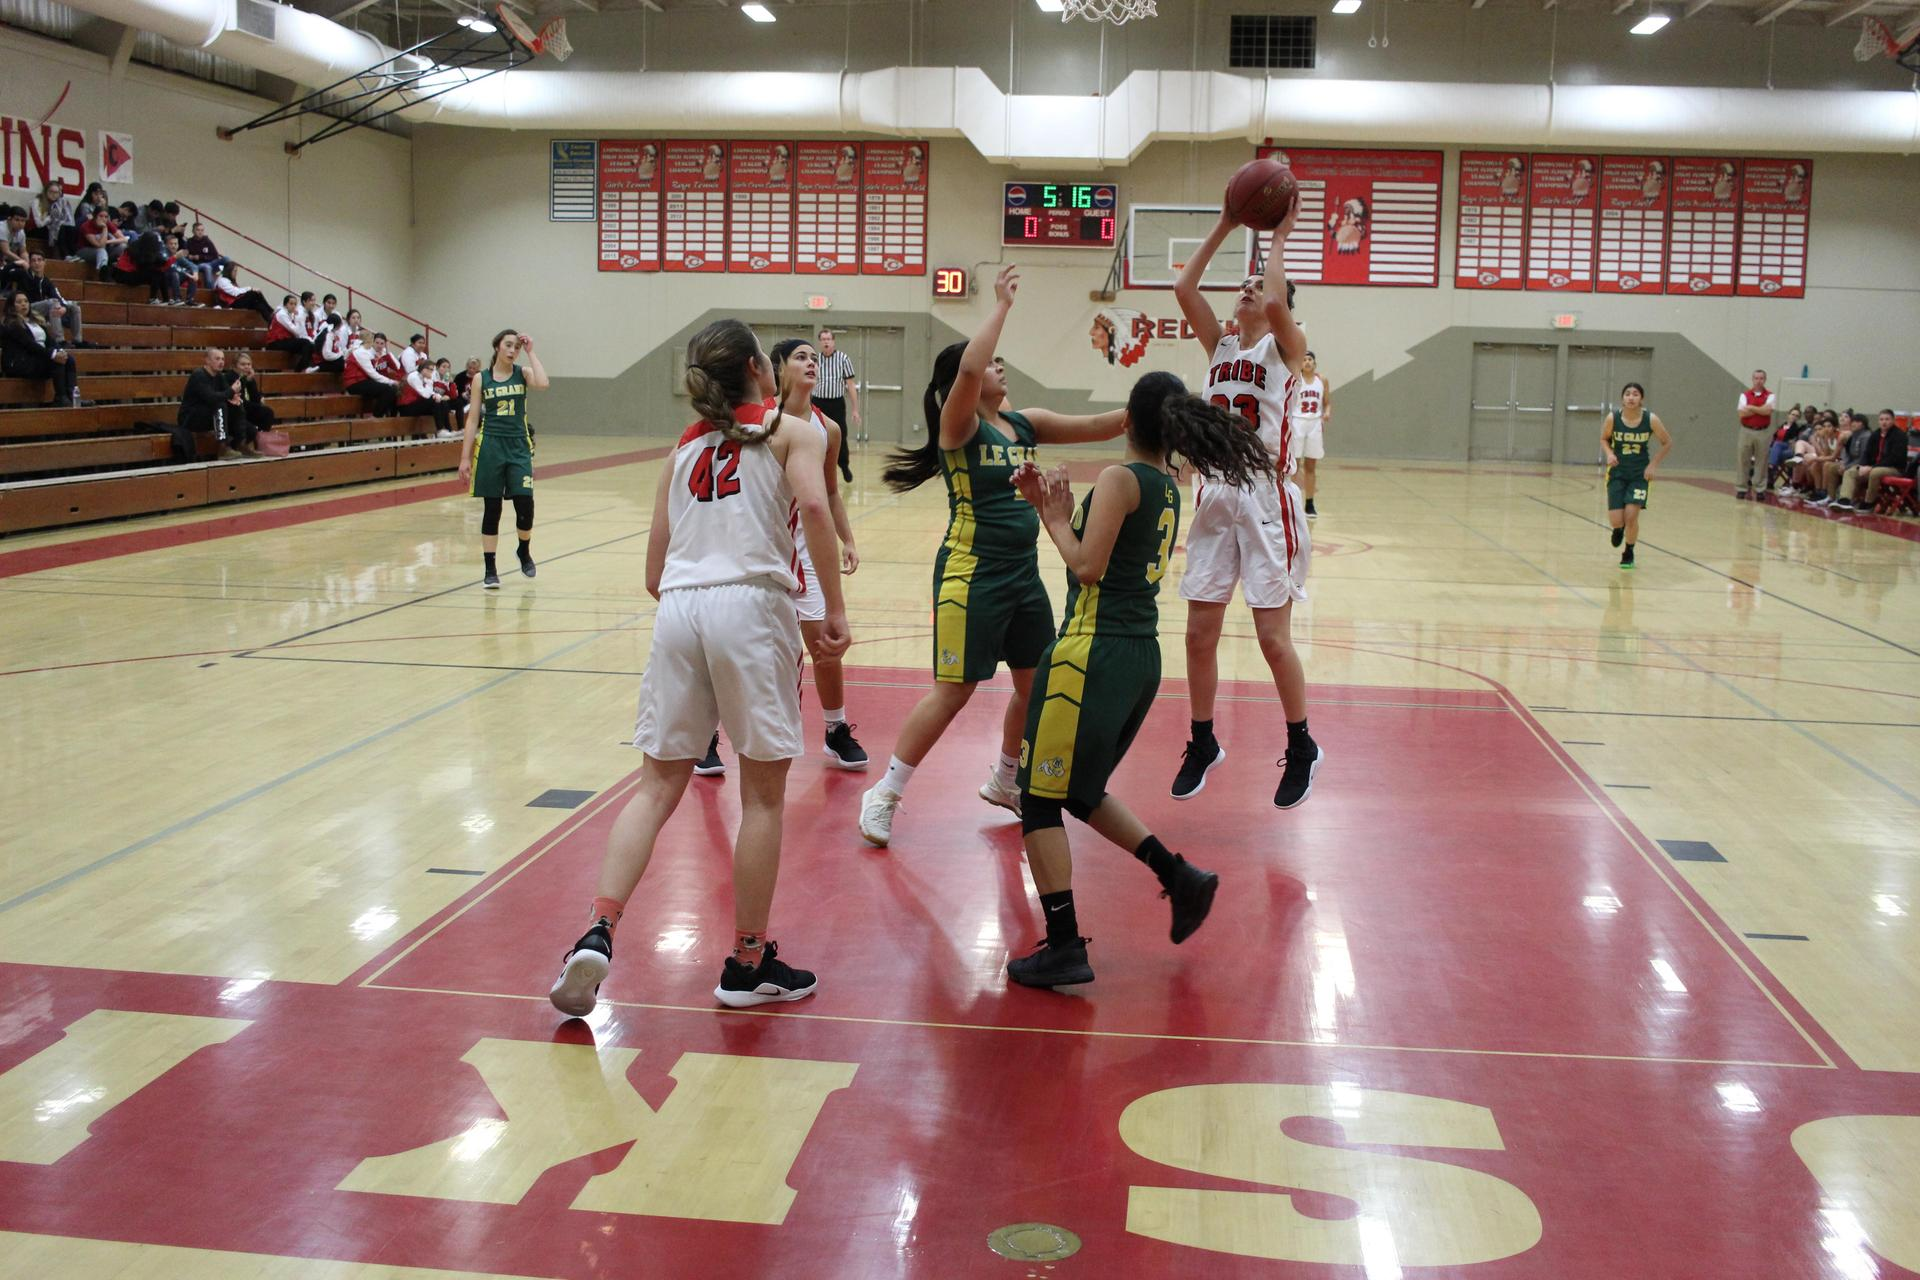 Varsity girls playing basketball against Le Grand